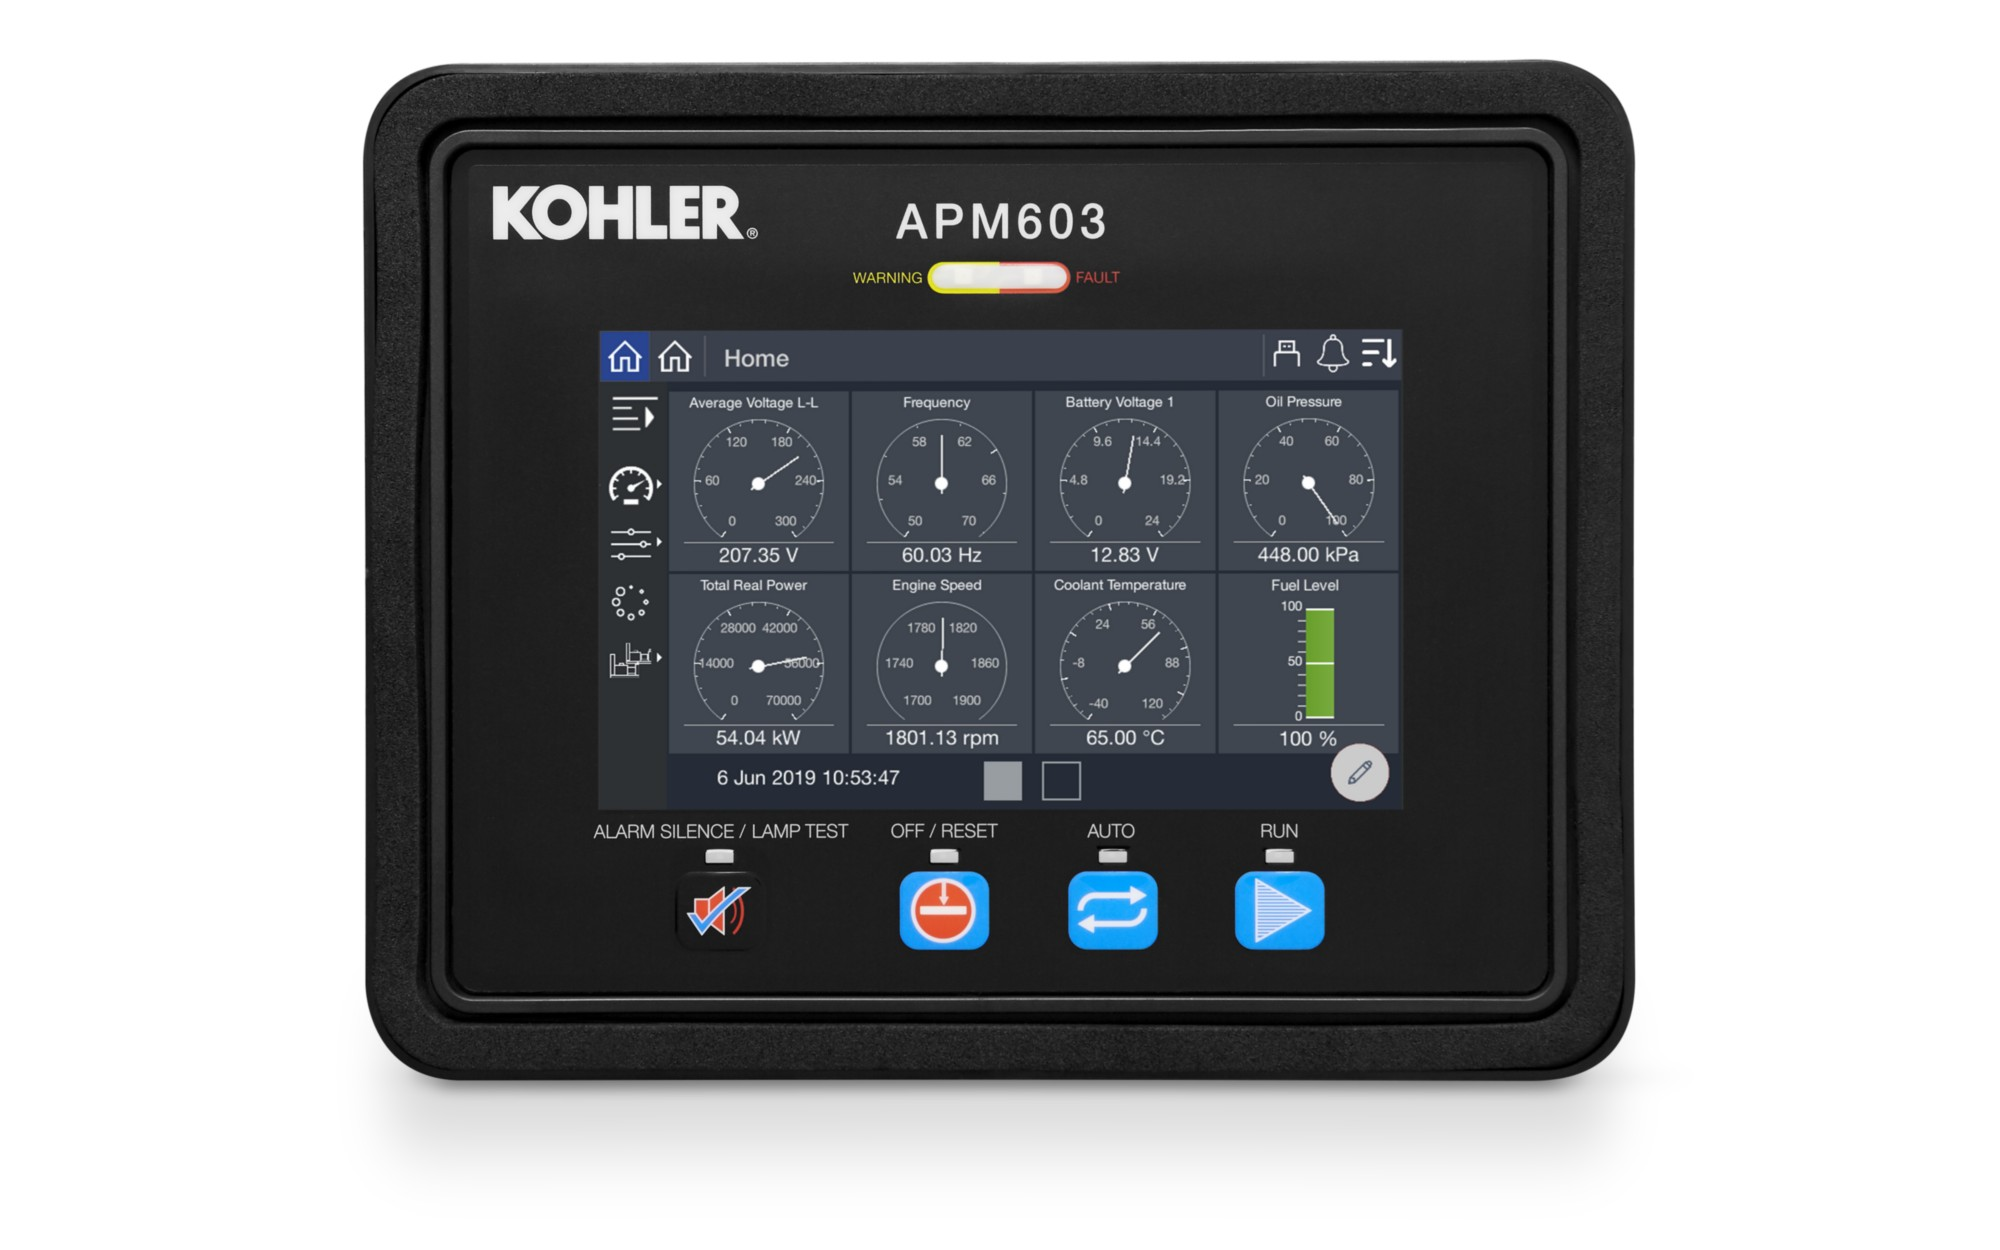 Kohler APM603 Generator Controller - Customized Touch Screen